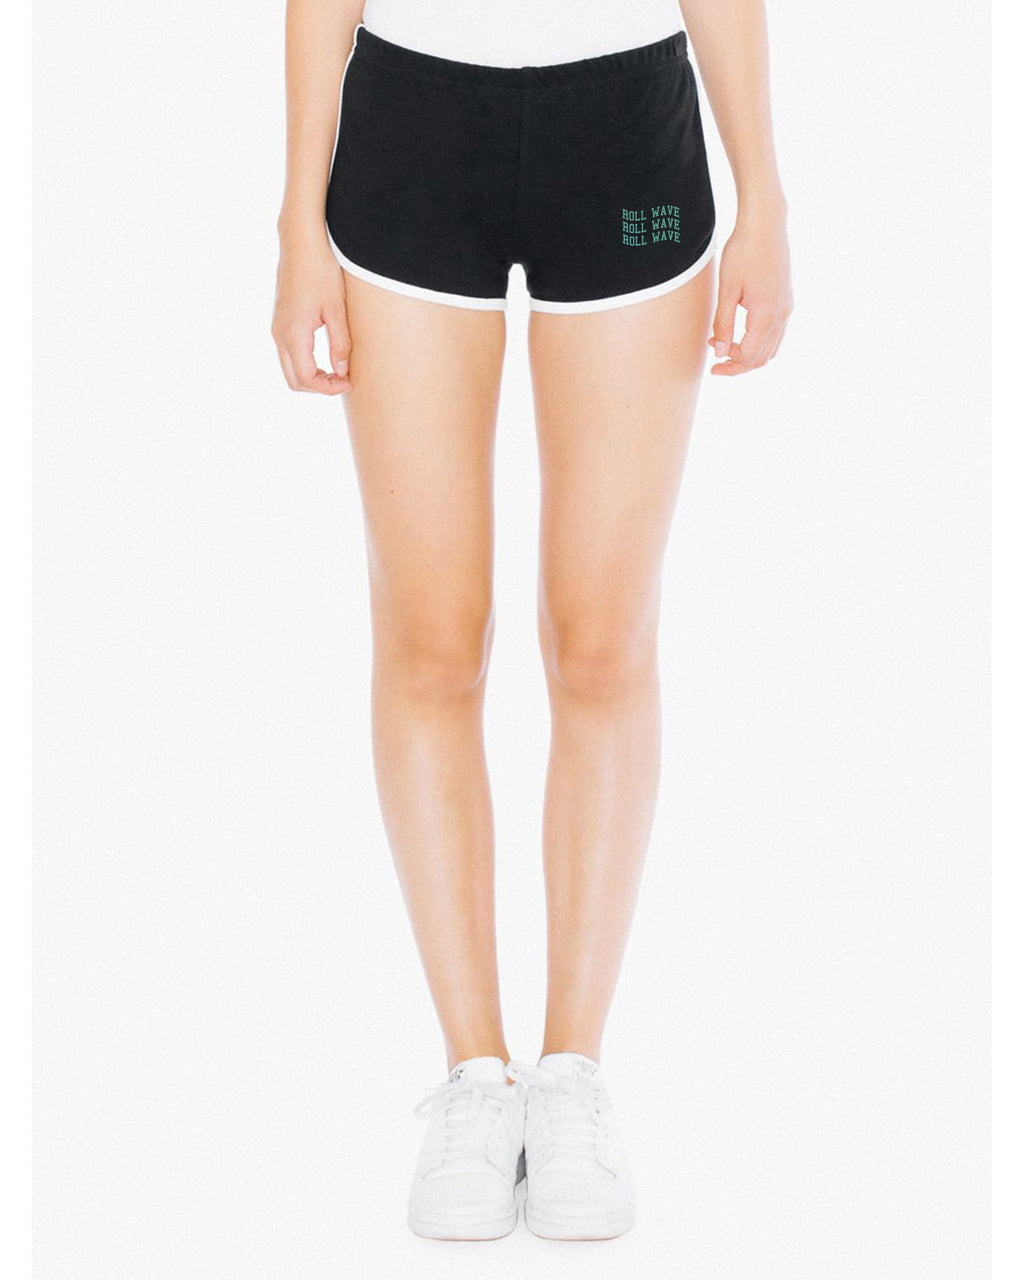 WAVY RETRO SHORTS - BLACK